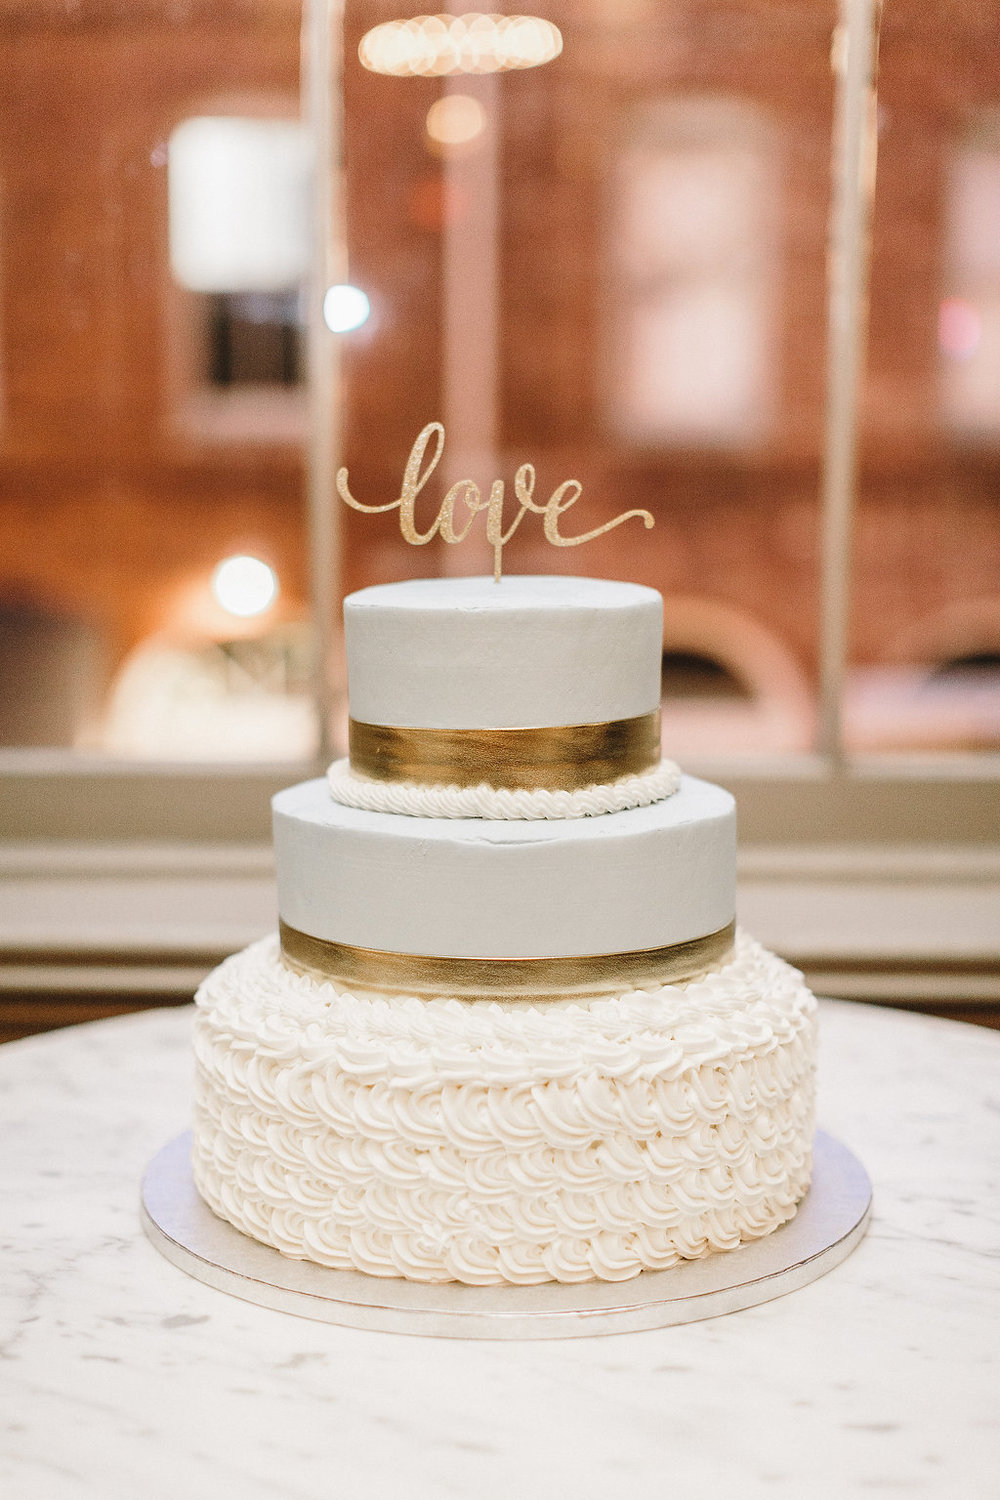 White and Gold Savannah wedding cake at Garibaldi's Cafe